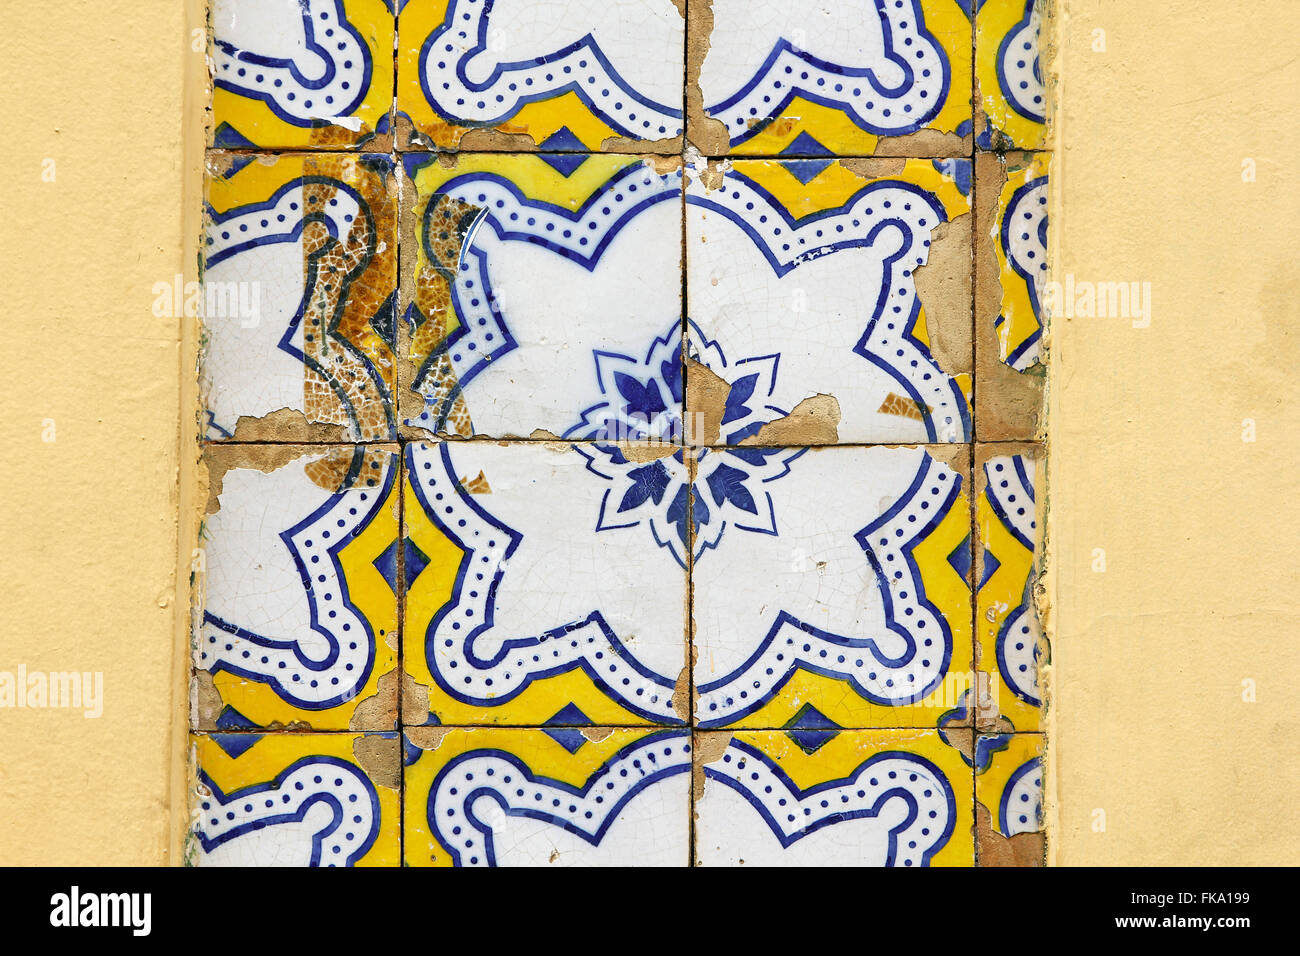 Detail of Portuguese glazed tiles poorly maintained - Stock Image